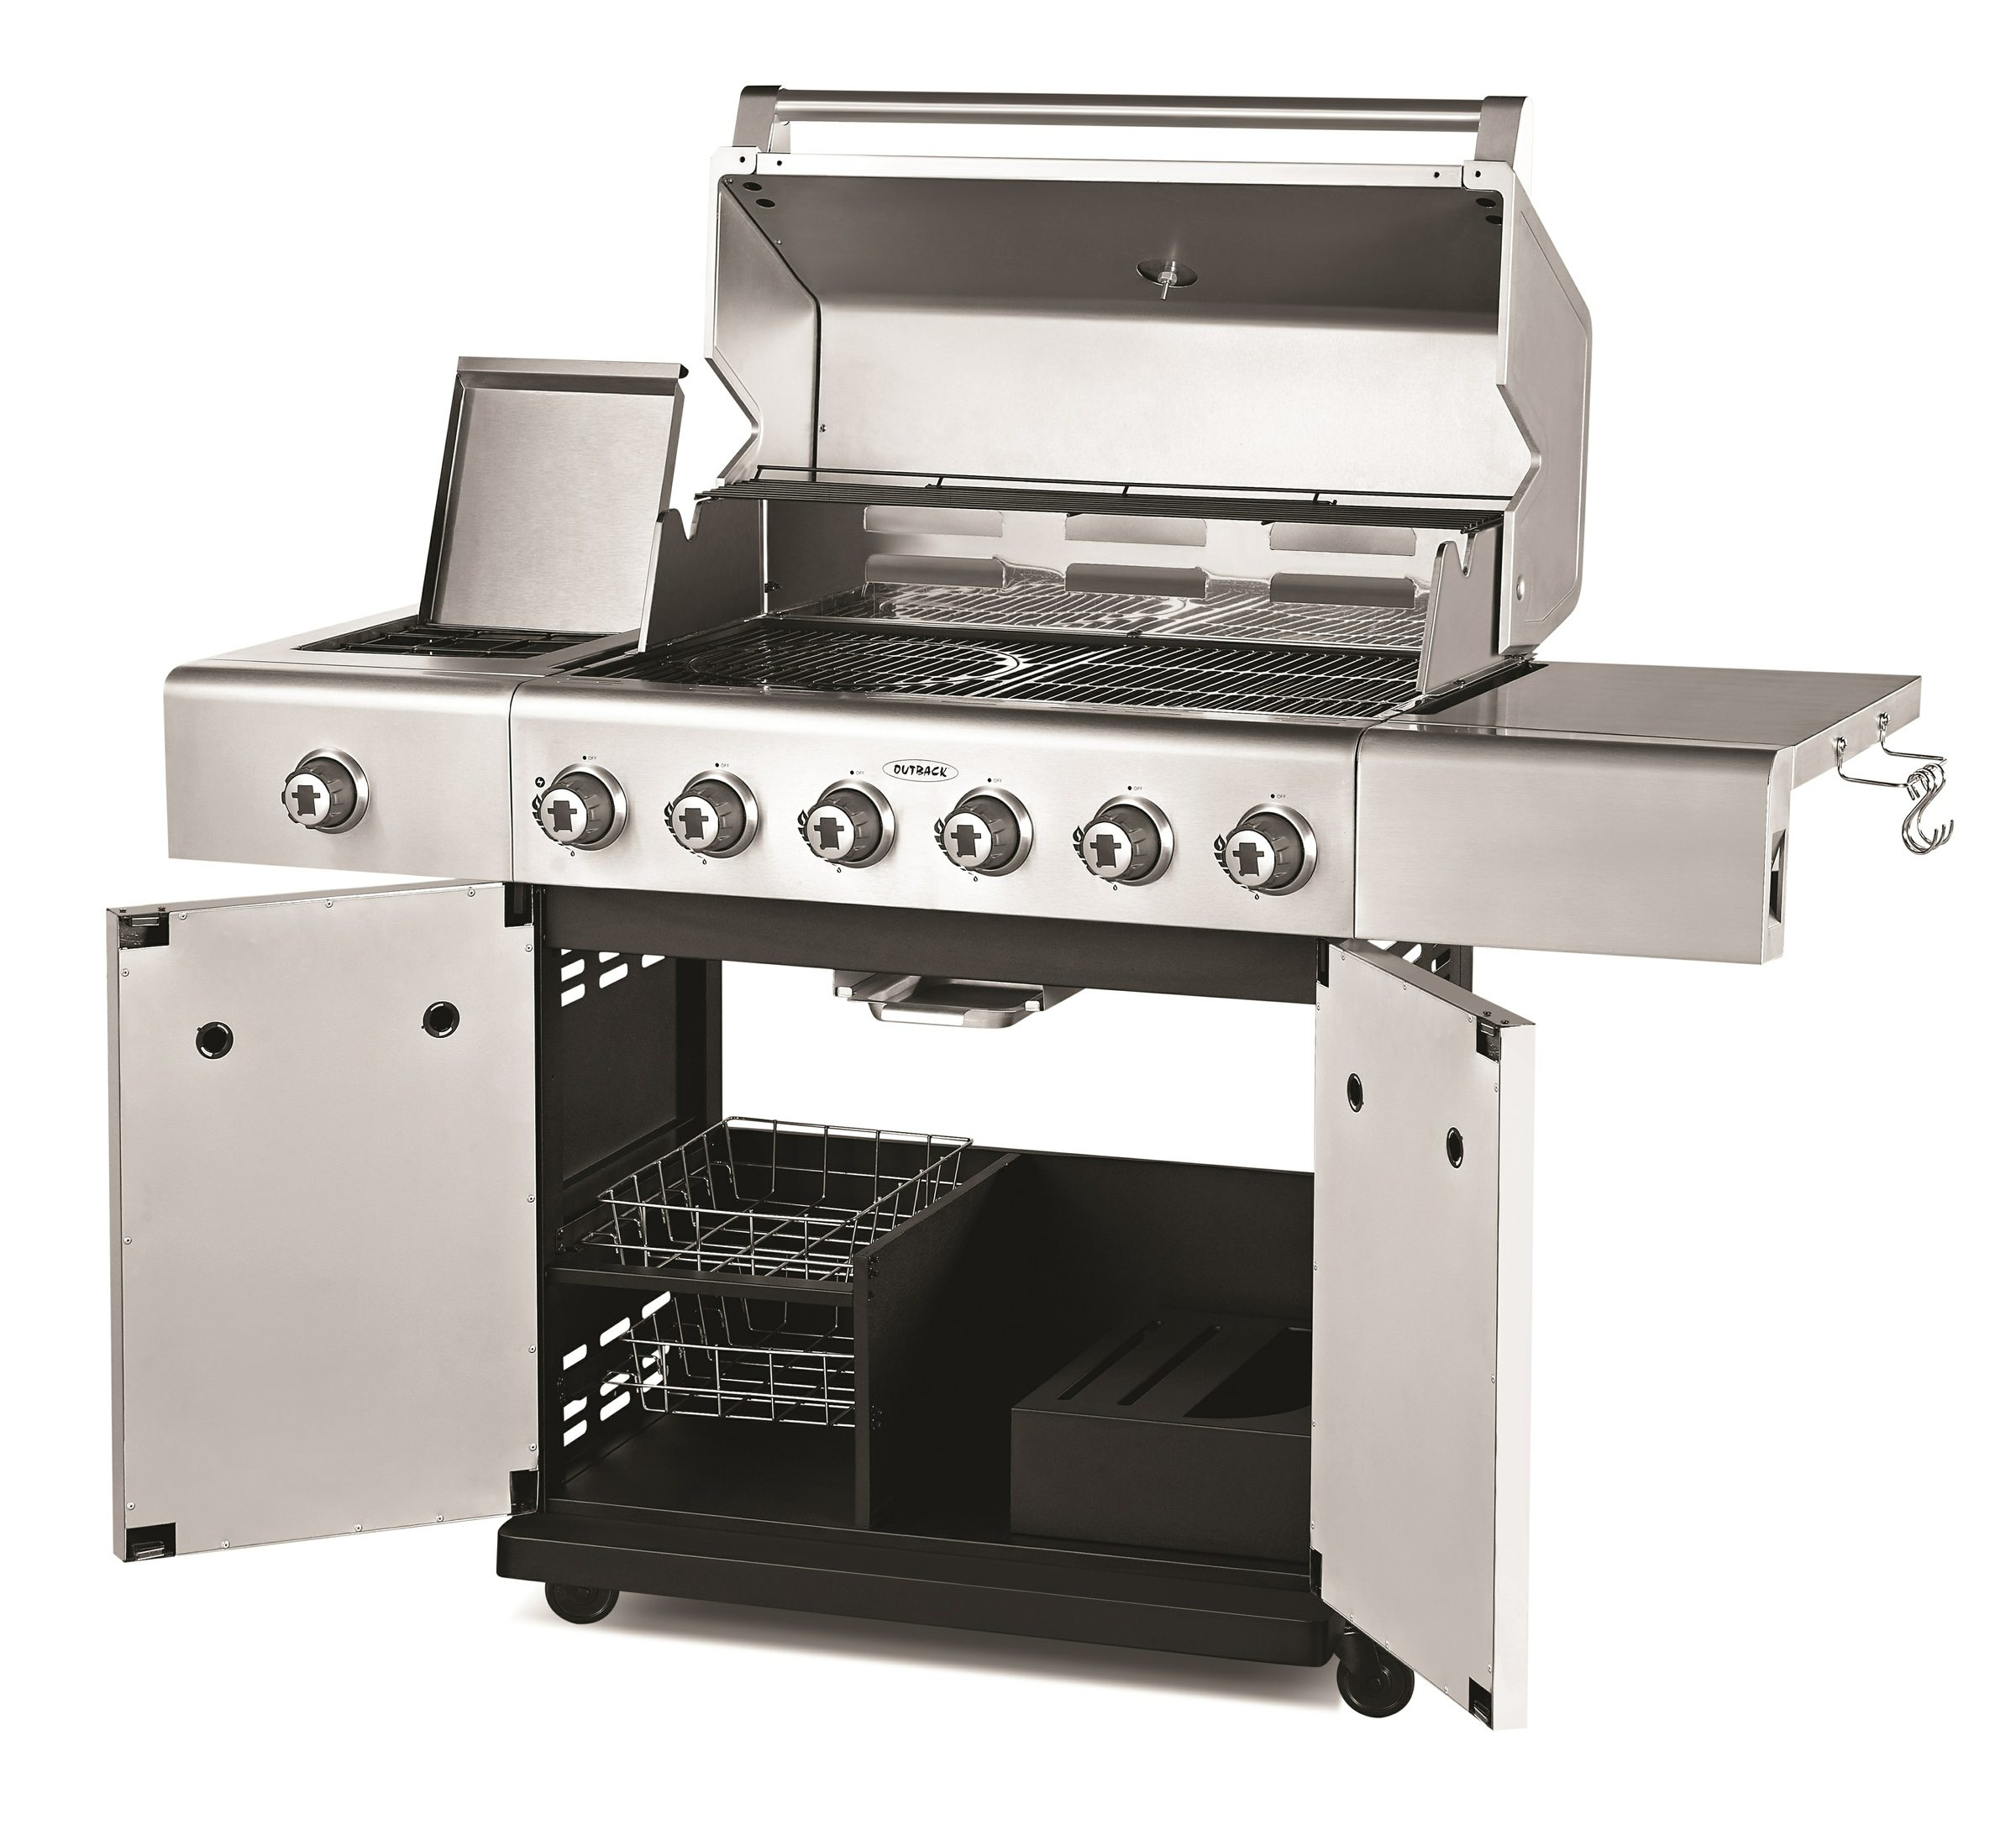 Outback Jupiter 6 Burner Stainless Steel